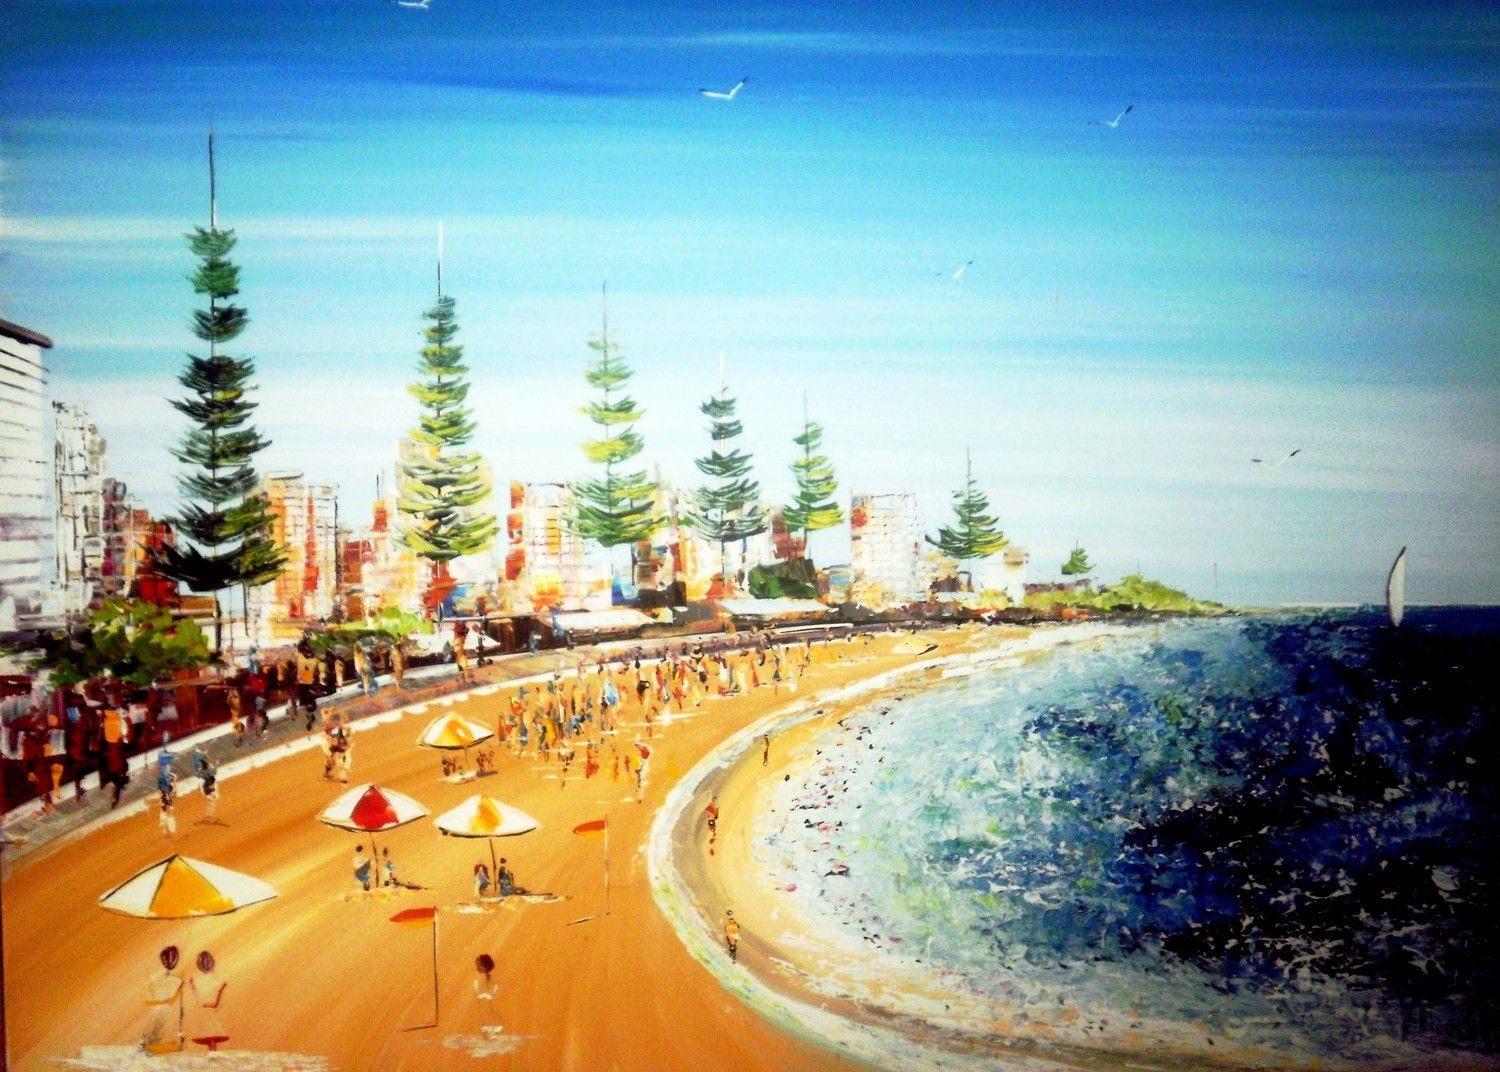 Seascape Beach Painting Acrylic On Canvas Artwork Blue White Yellow Rare Sydney Australia Scene Wall Art Home Decor